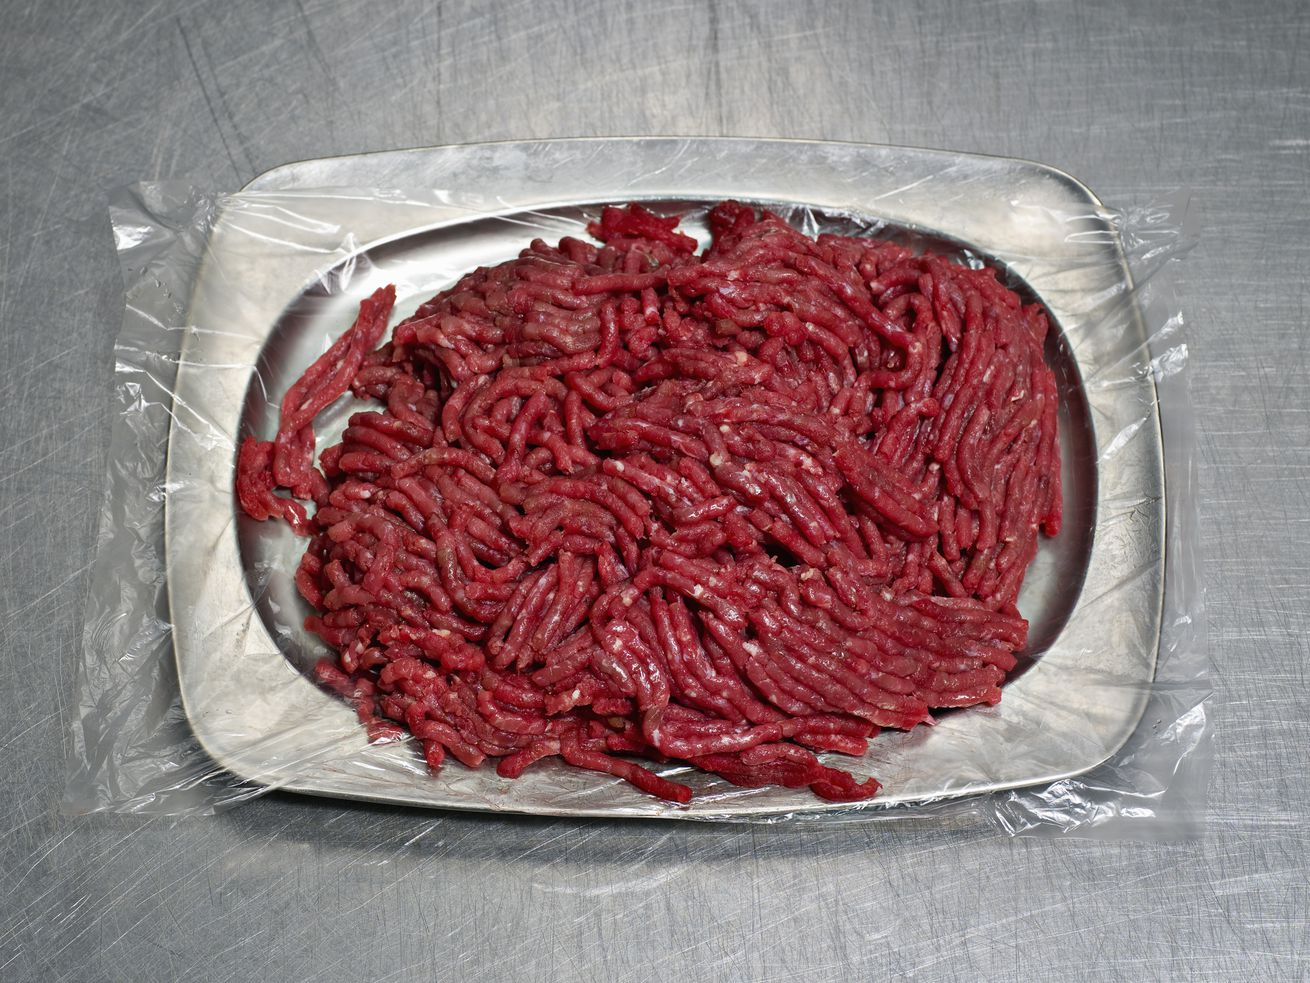 To date, 57 cases of salmonella illness in 15 states have been linked to a current outbreak caused by ground beef.